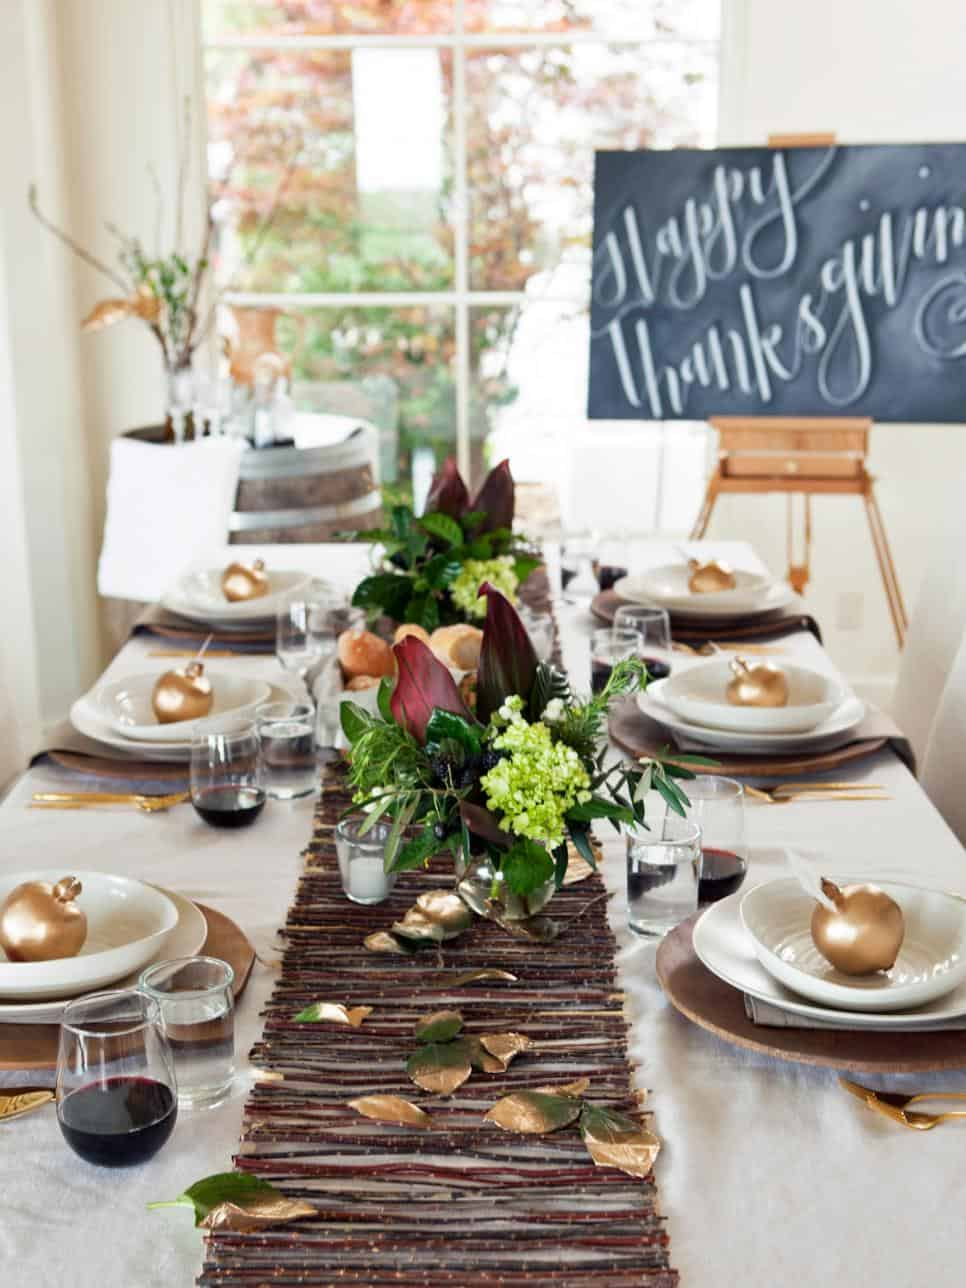 40 Gorgeous Dining Table Fall Decor Ideas For Every Special Day In Your Life